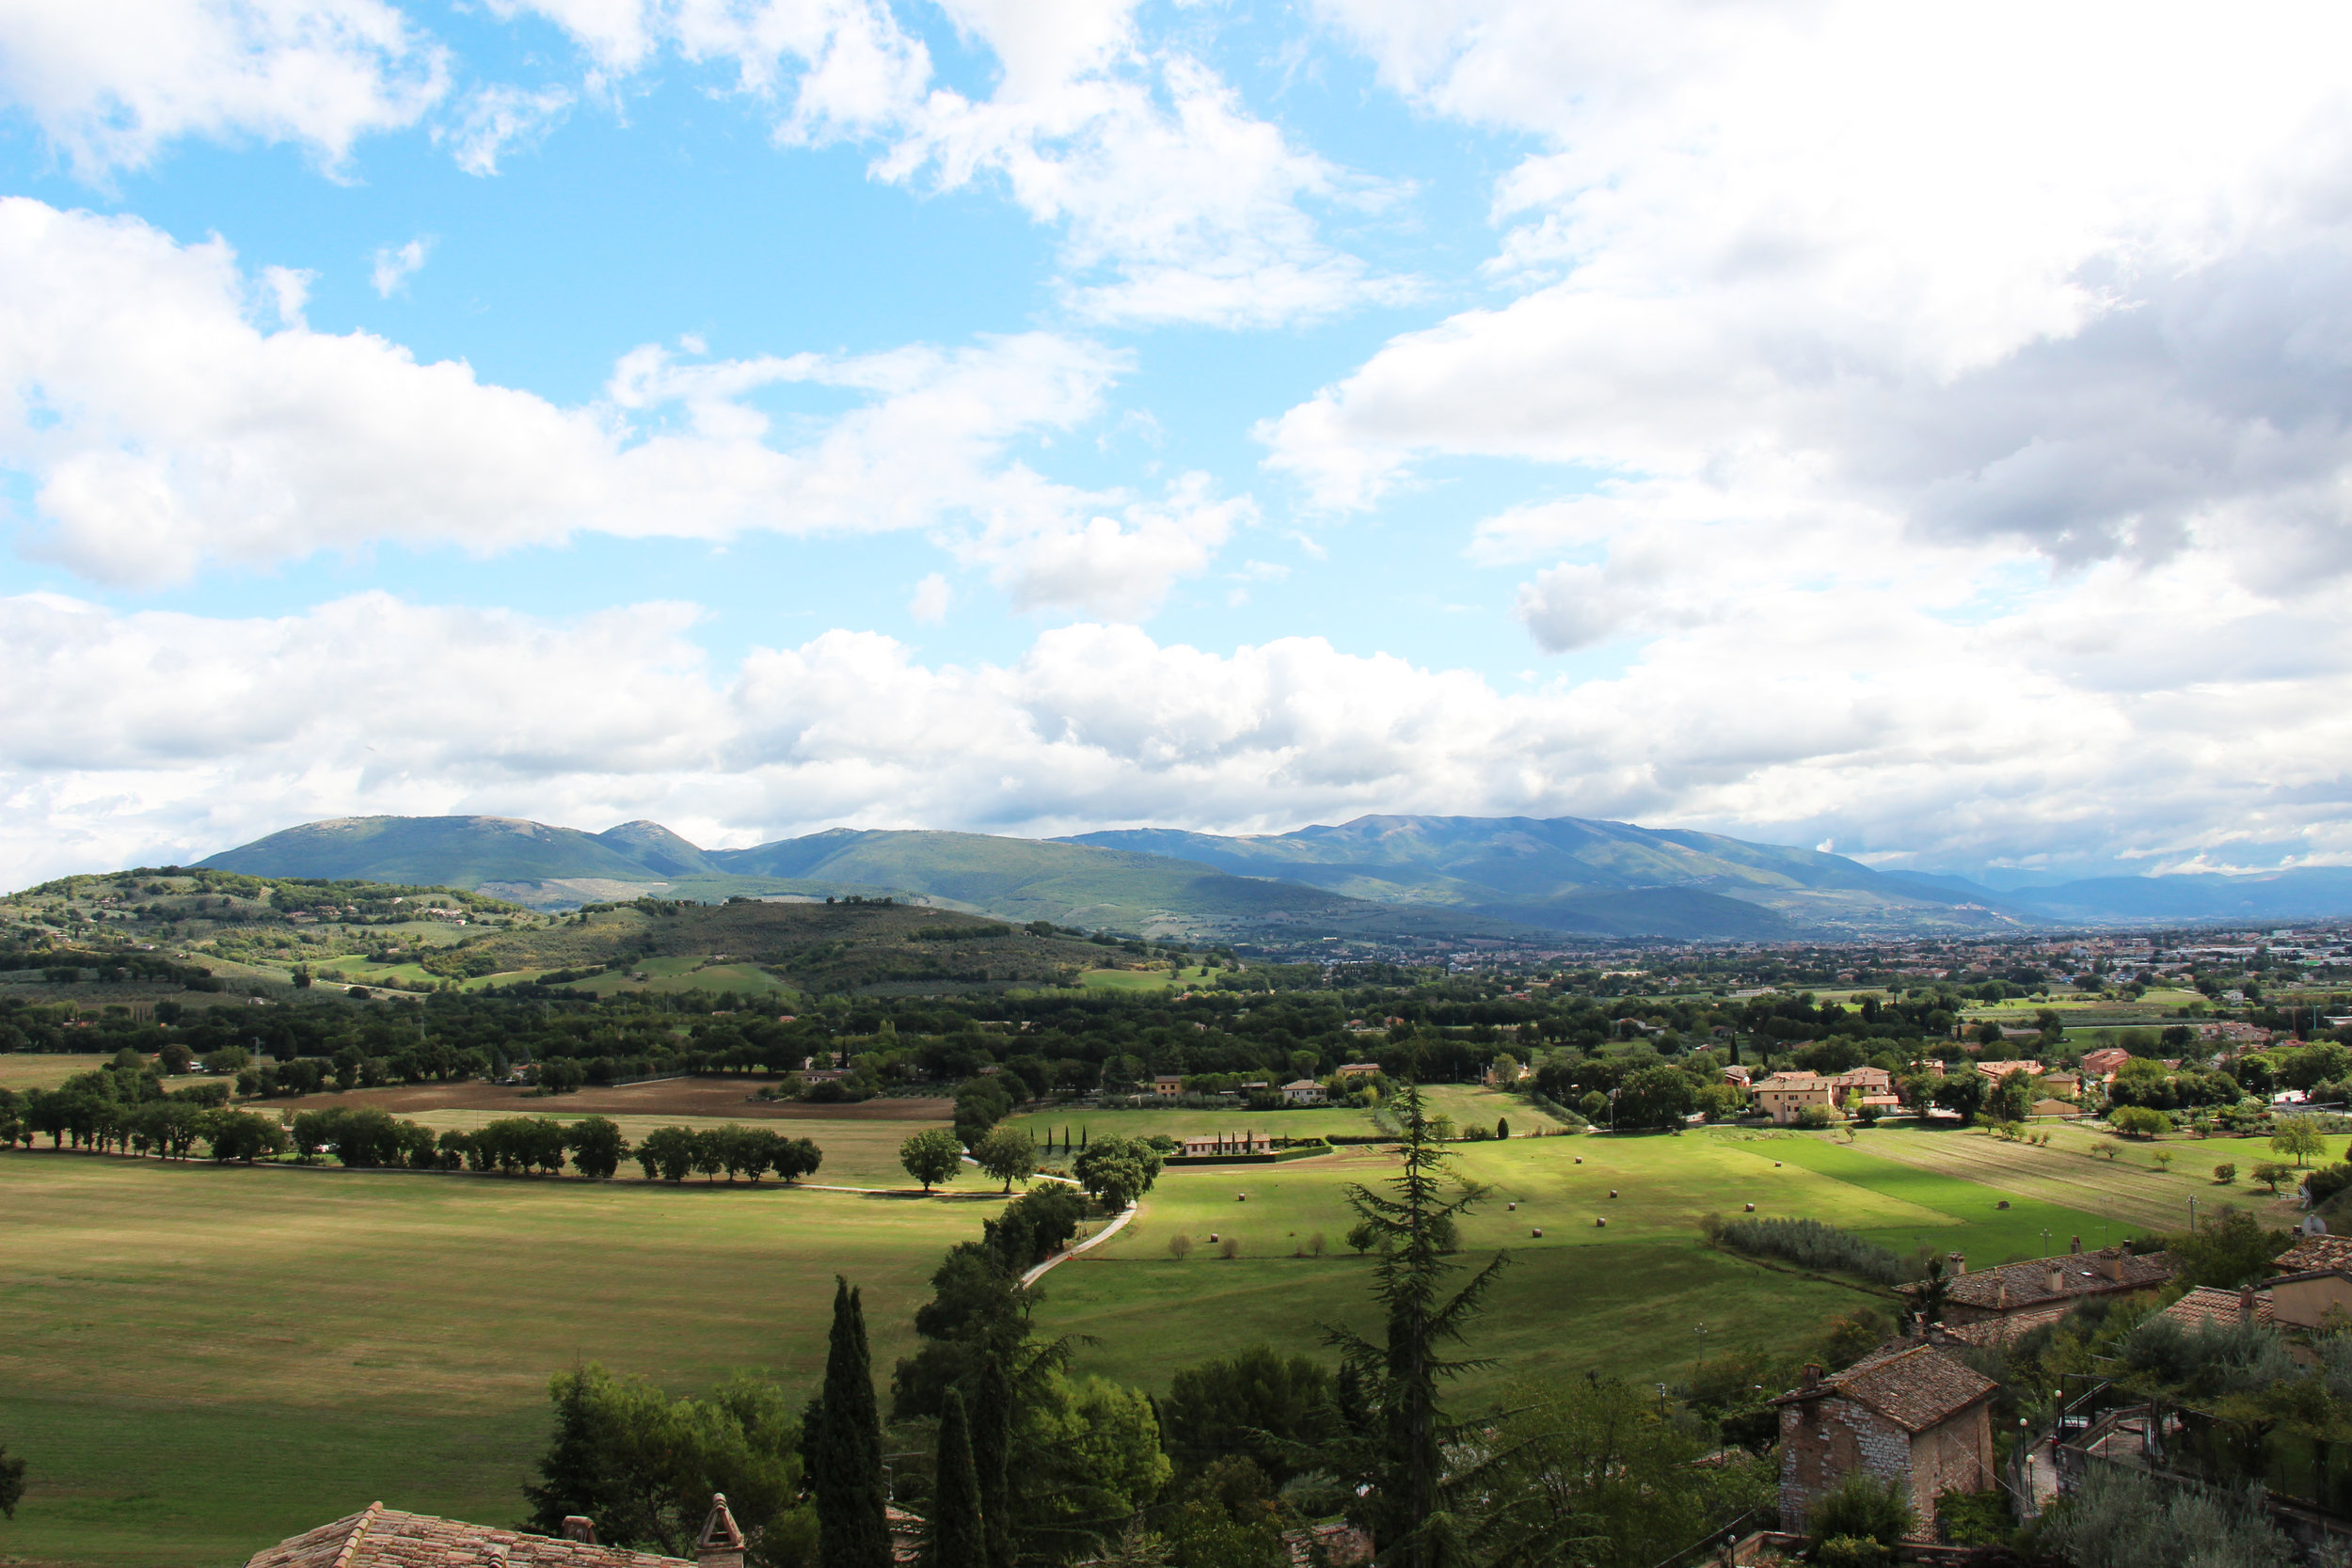 Beautiful Spello - the view from our humble abode.